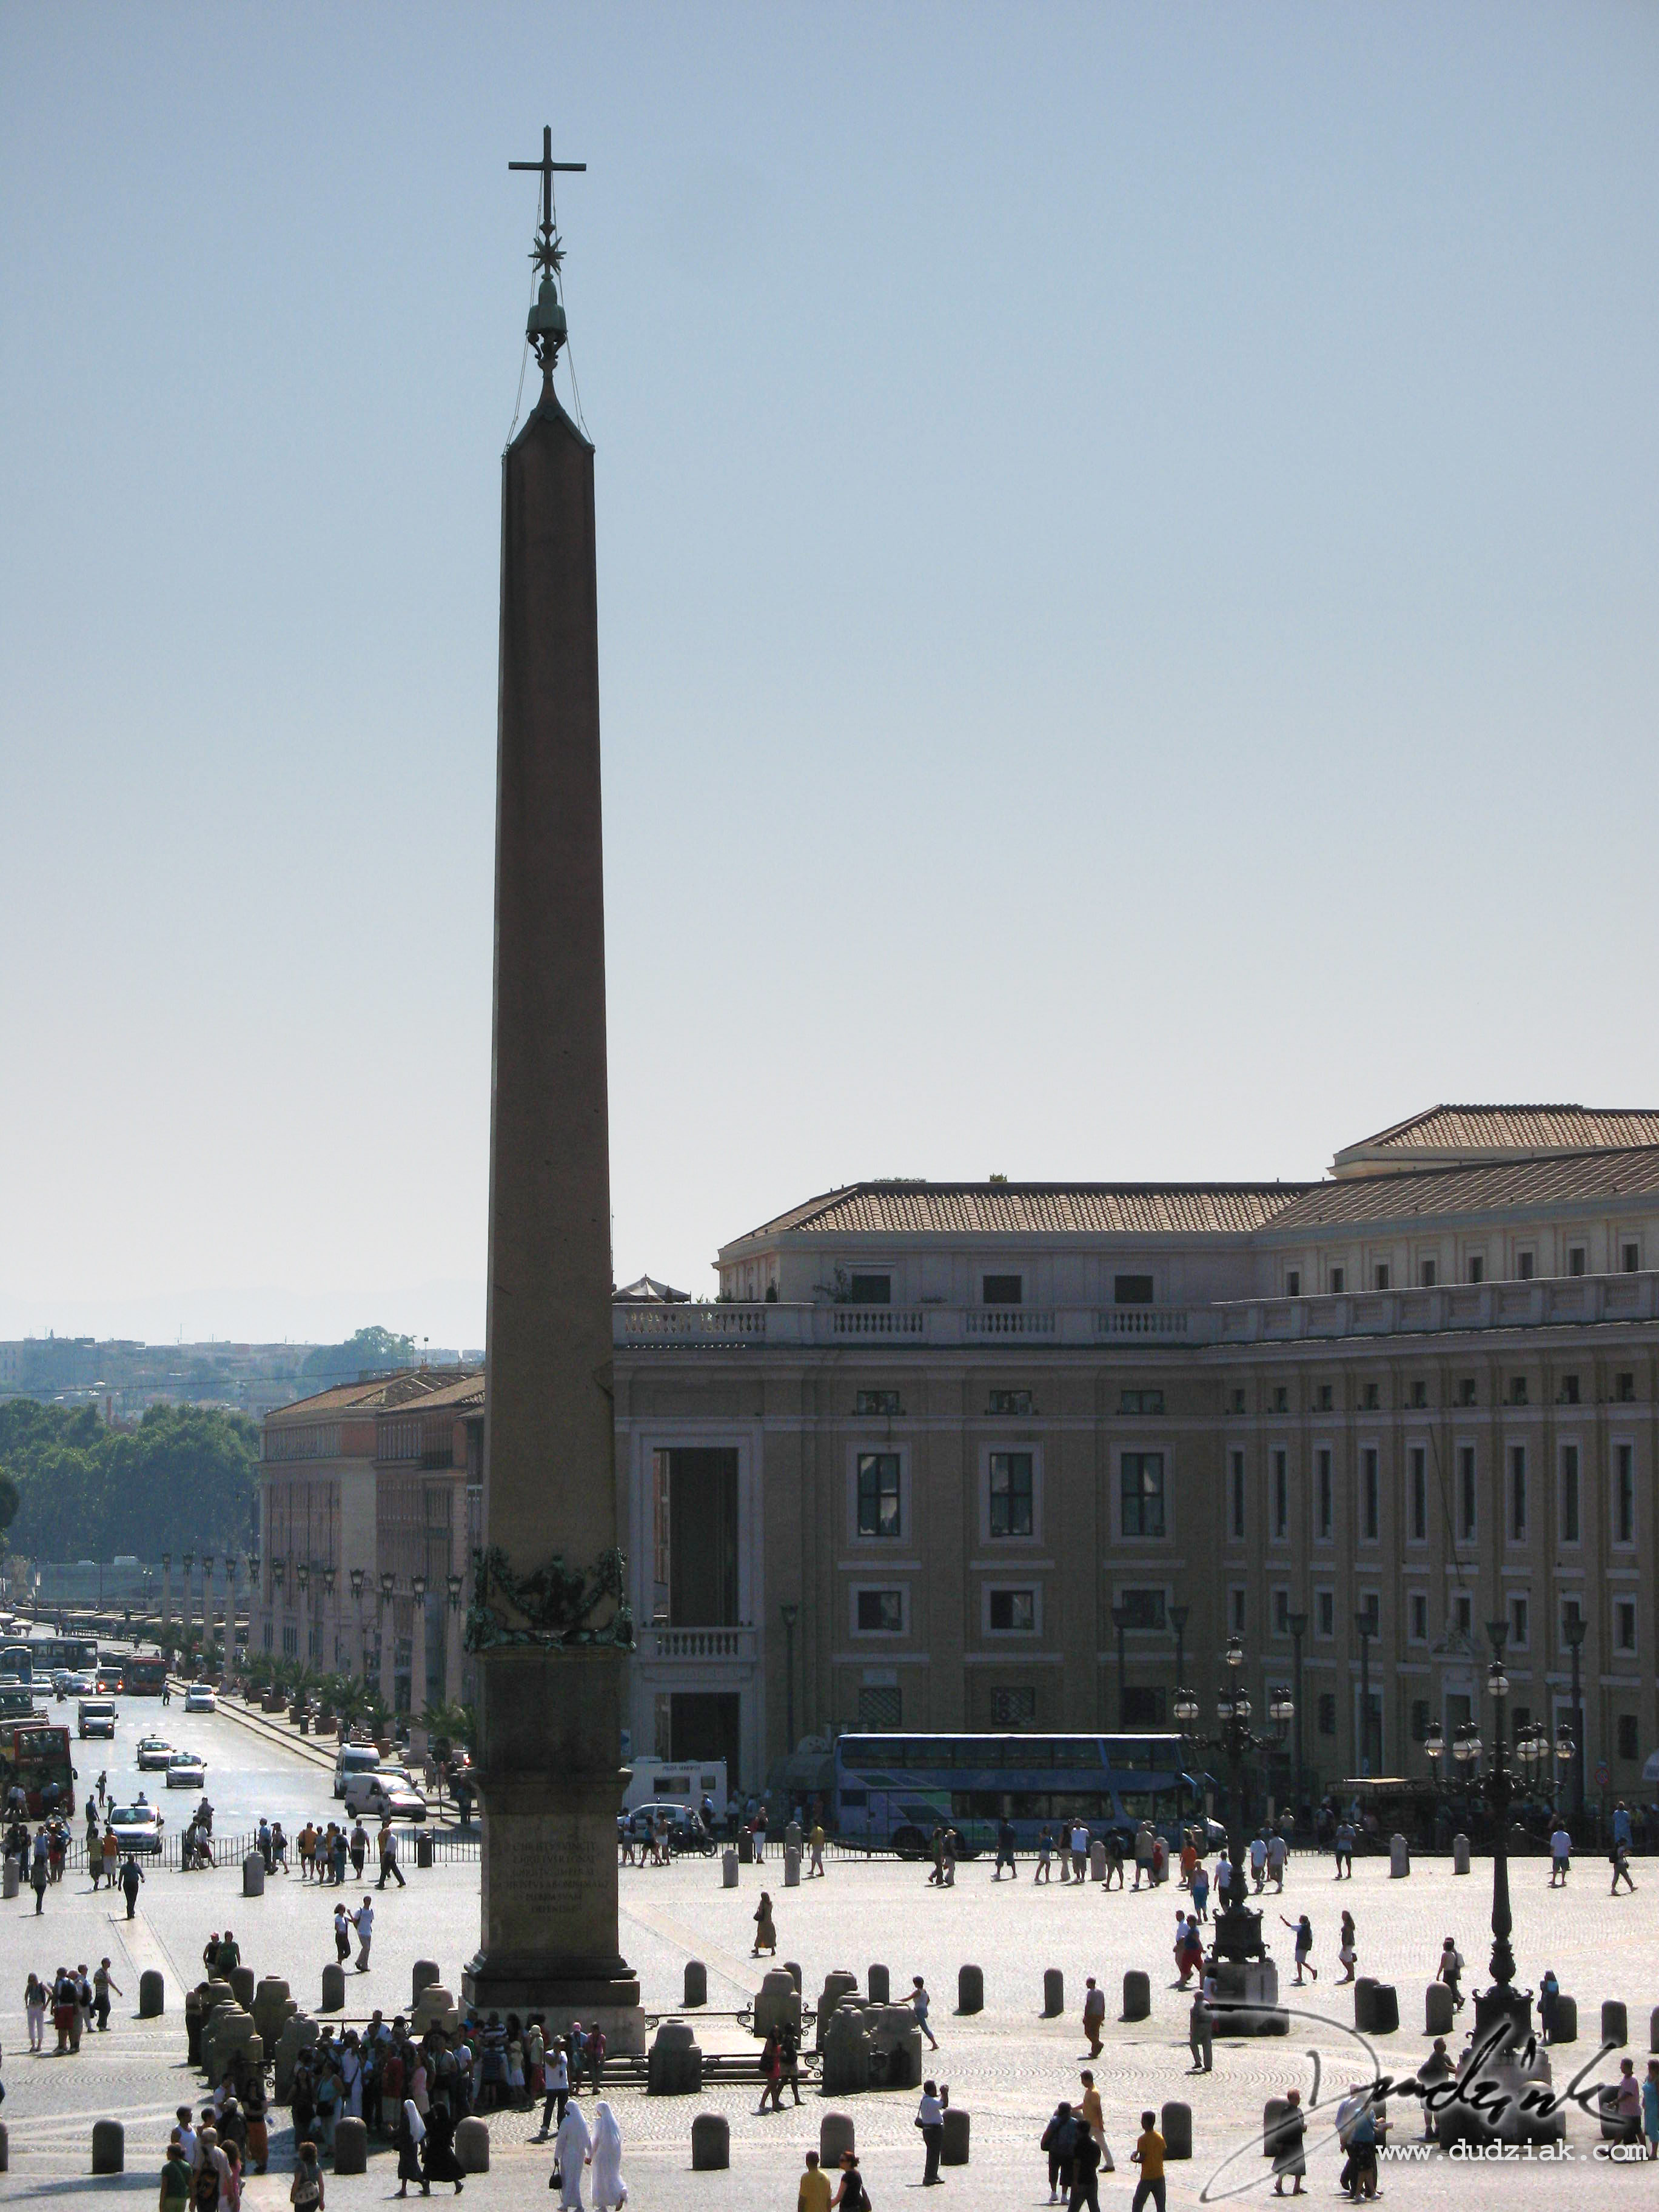 Saint Peter's Square and Obelisk.